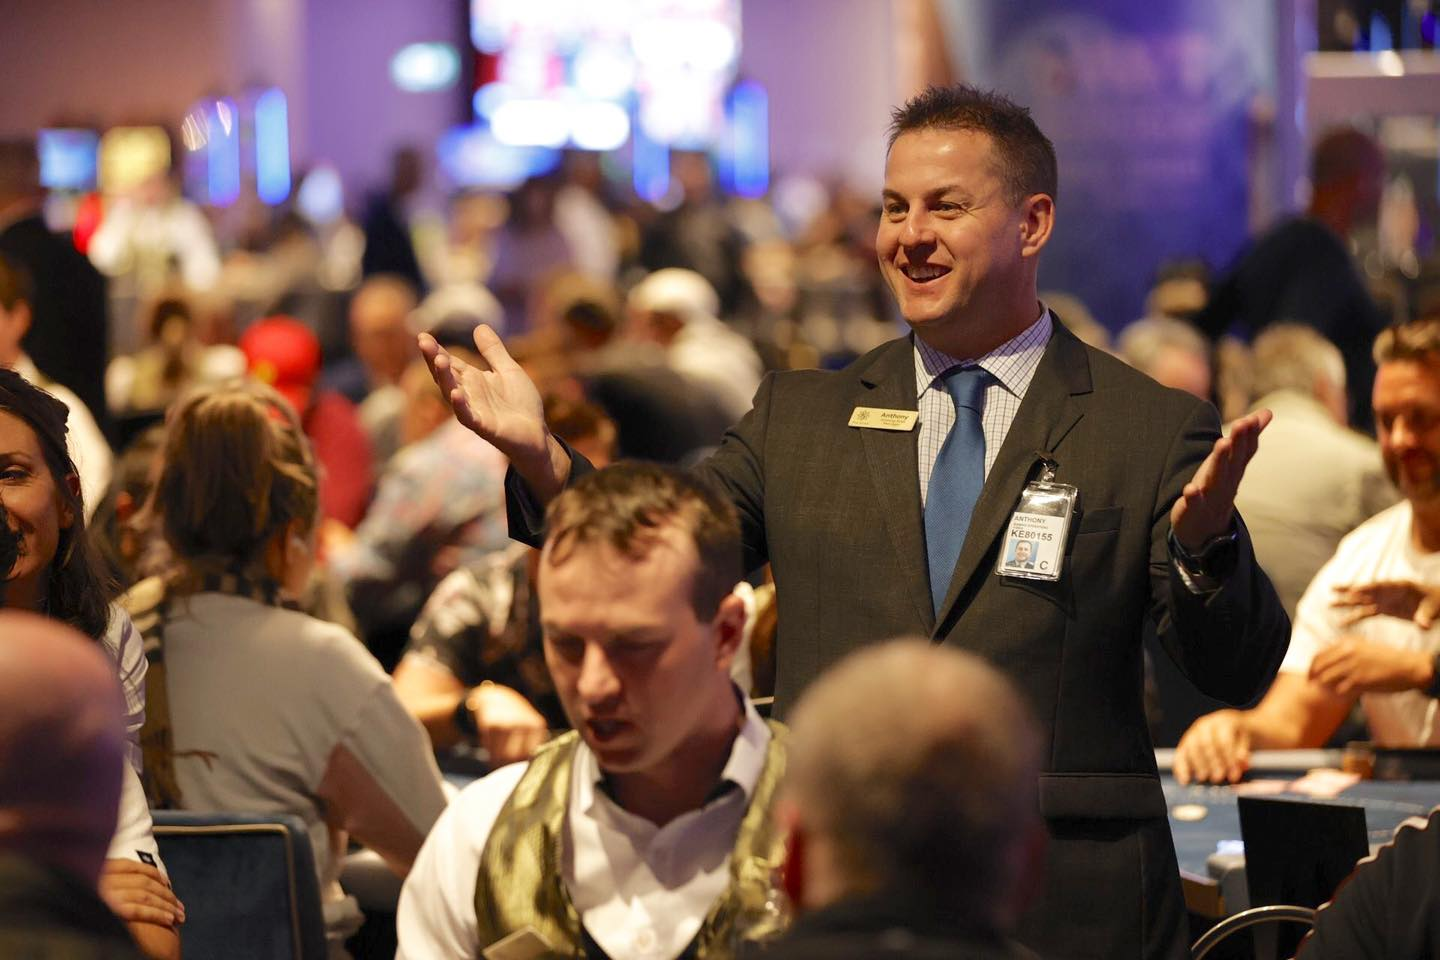 Hussein Hassan leads after Day 1A of WPTDeepStacks Gold Coast